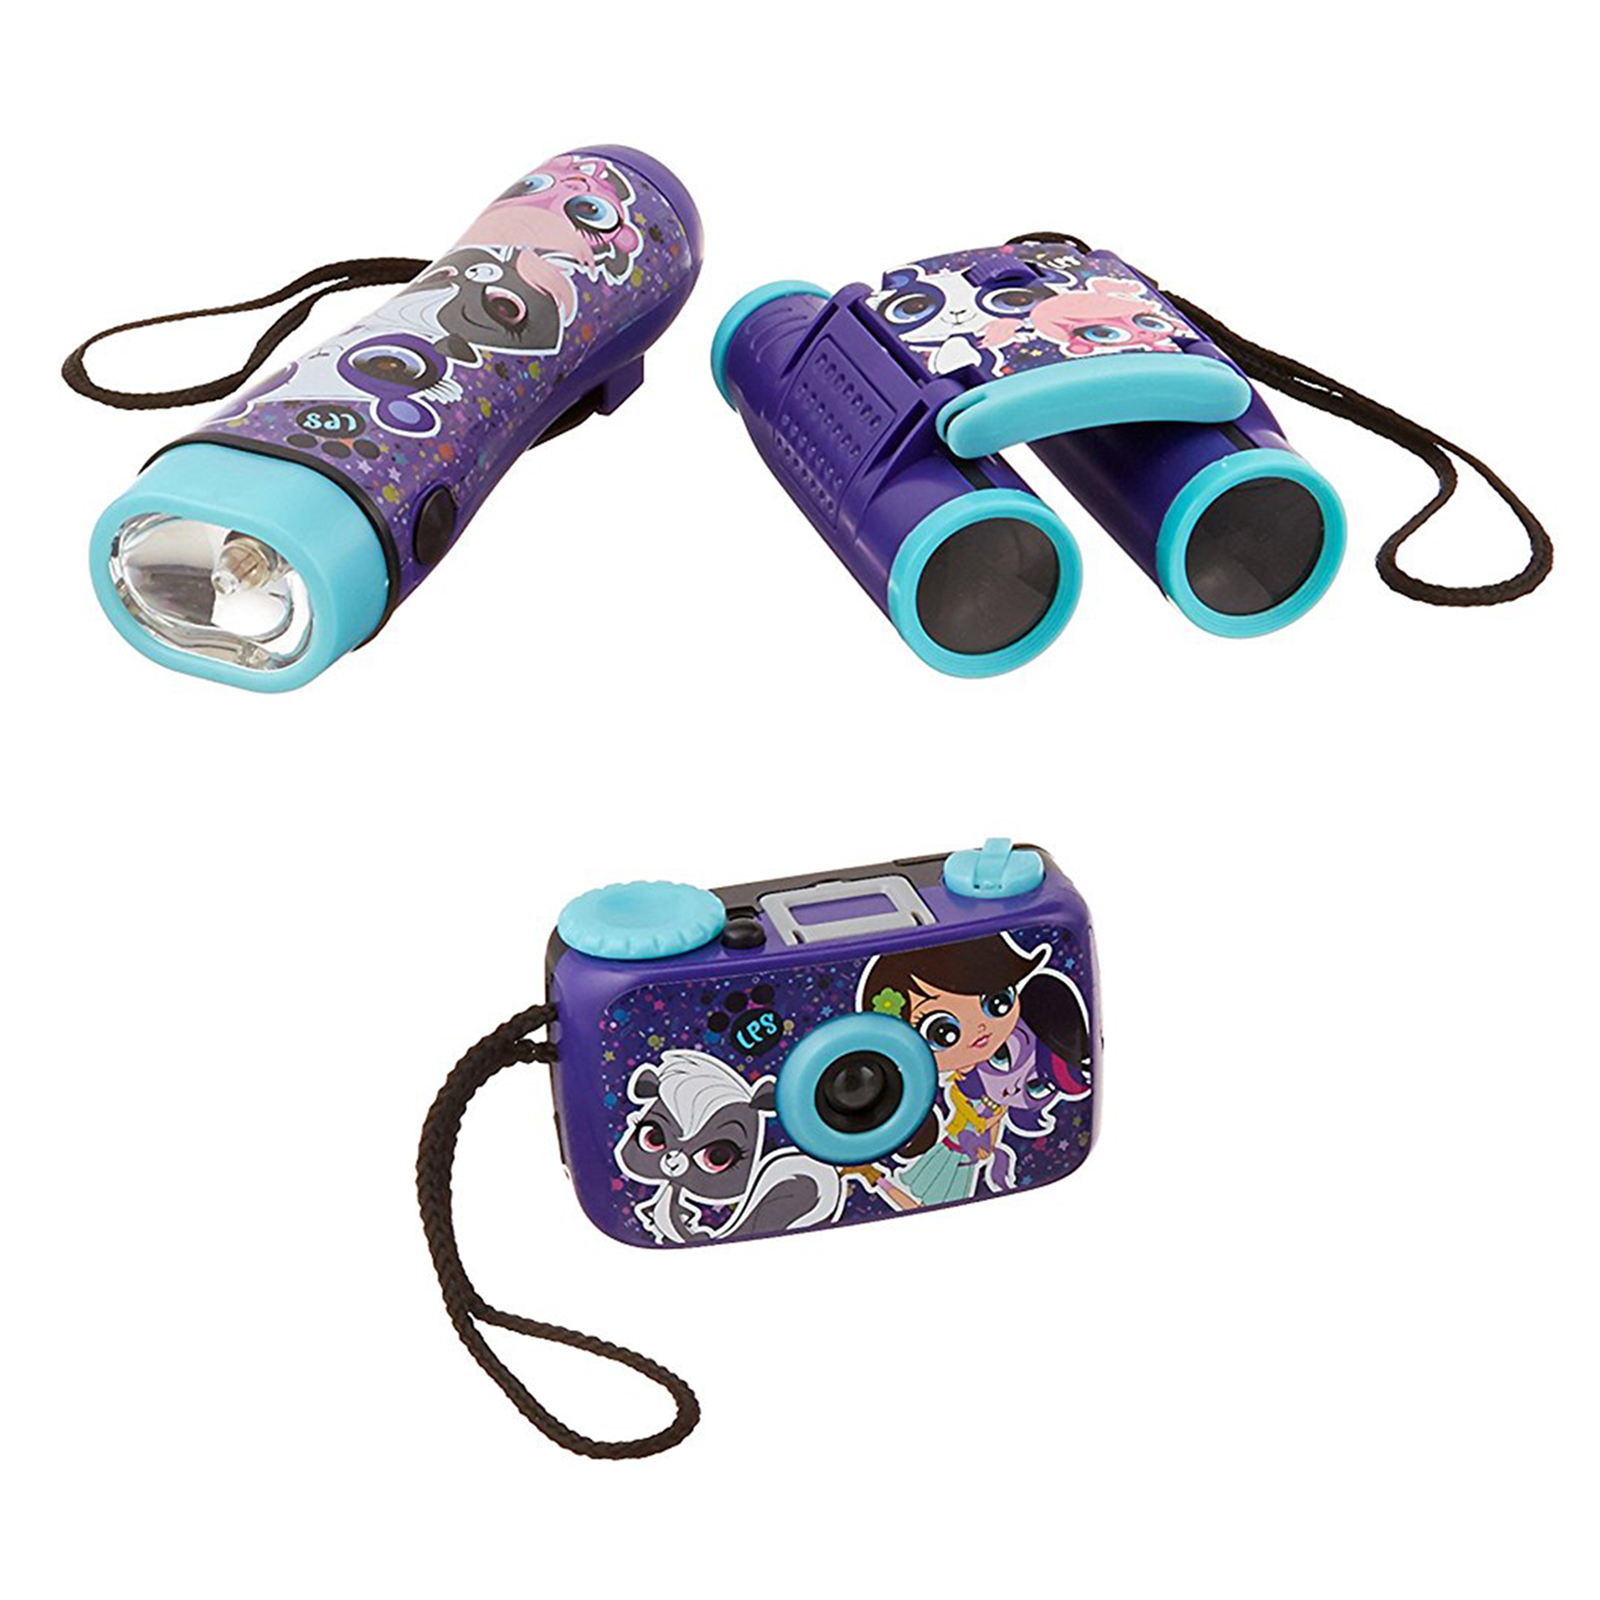 Image of Littlest Pet Shop 3-Piece Adventure Kit with Camera, Flashlight, and Binocular